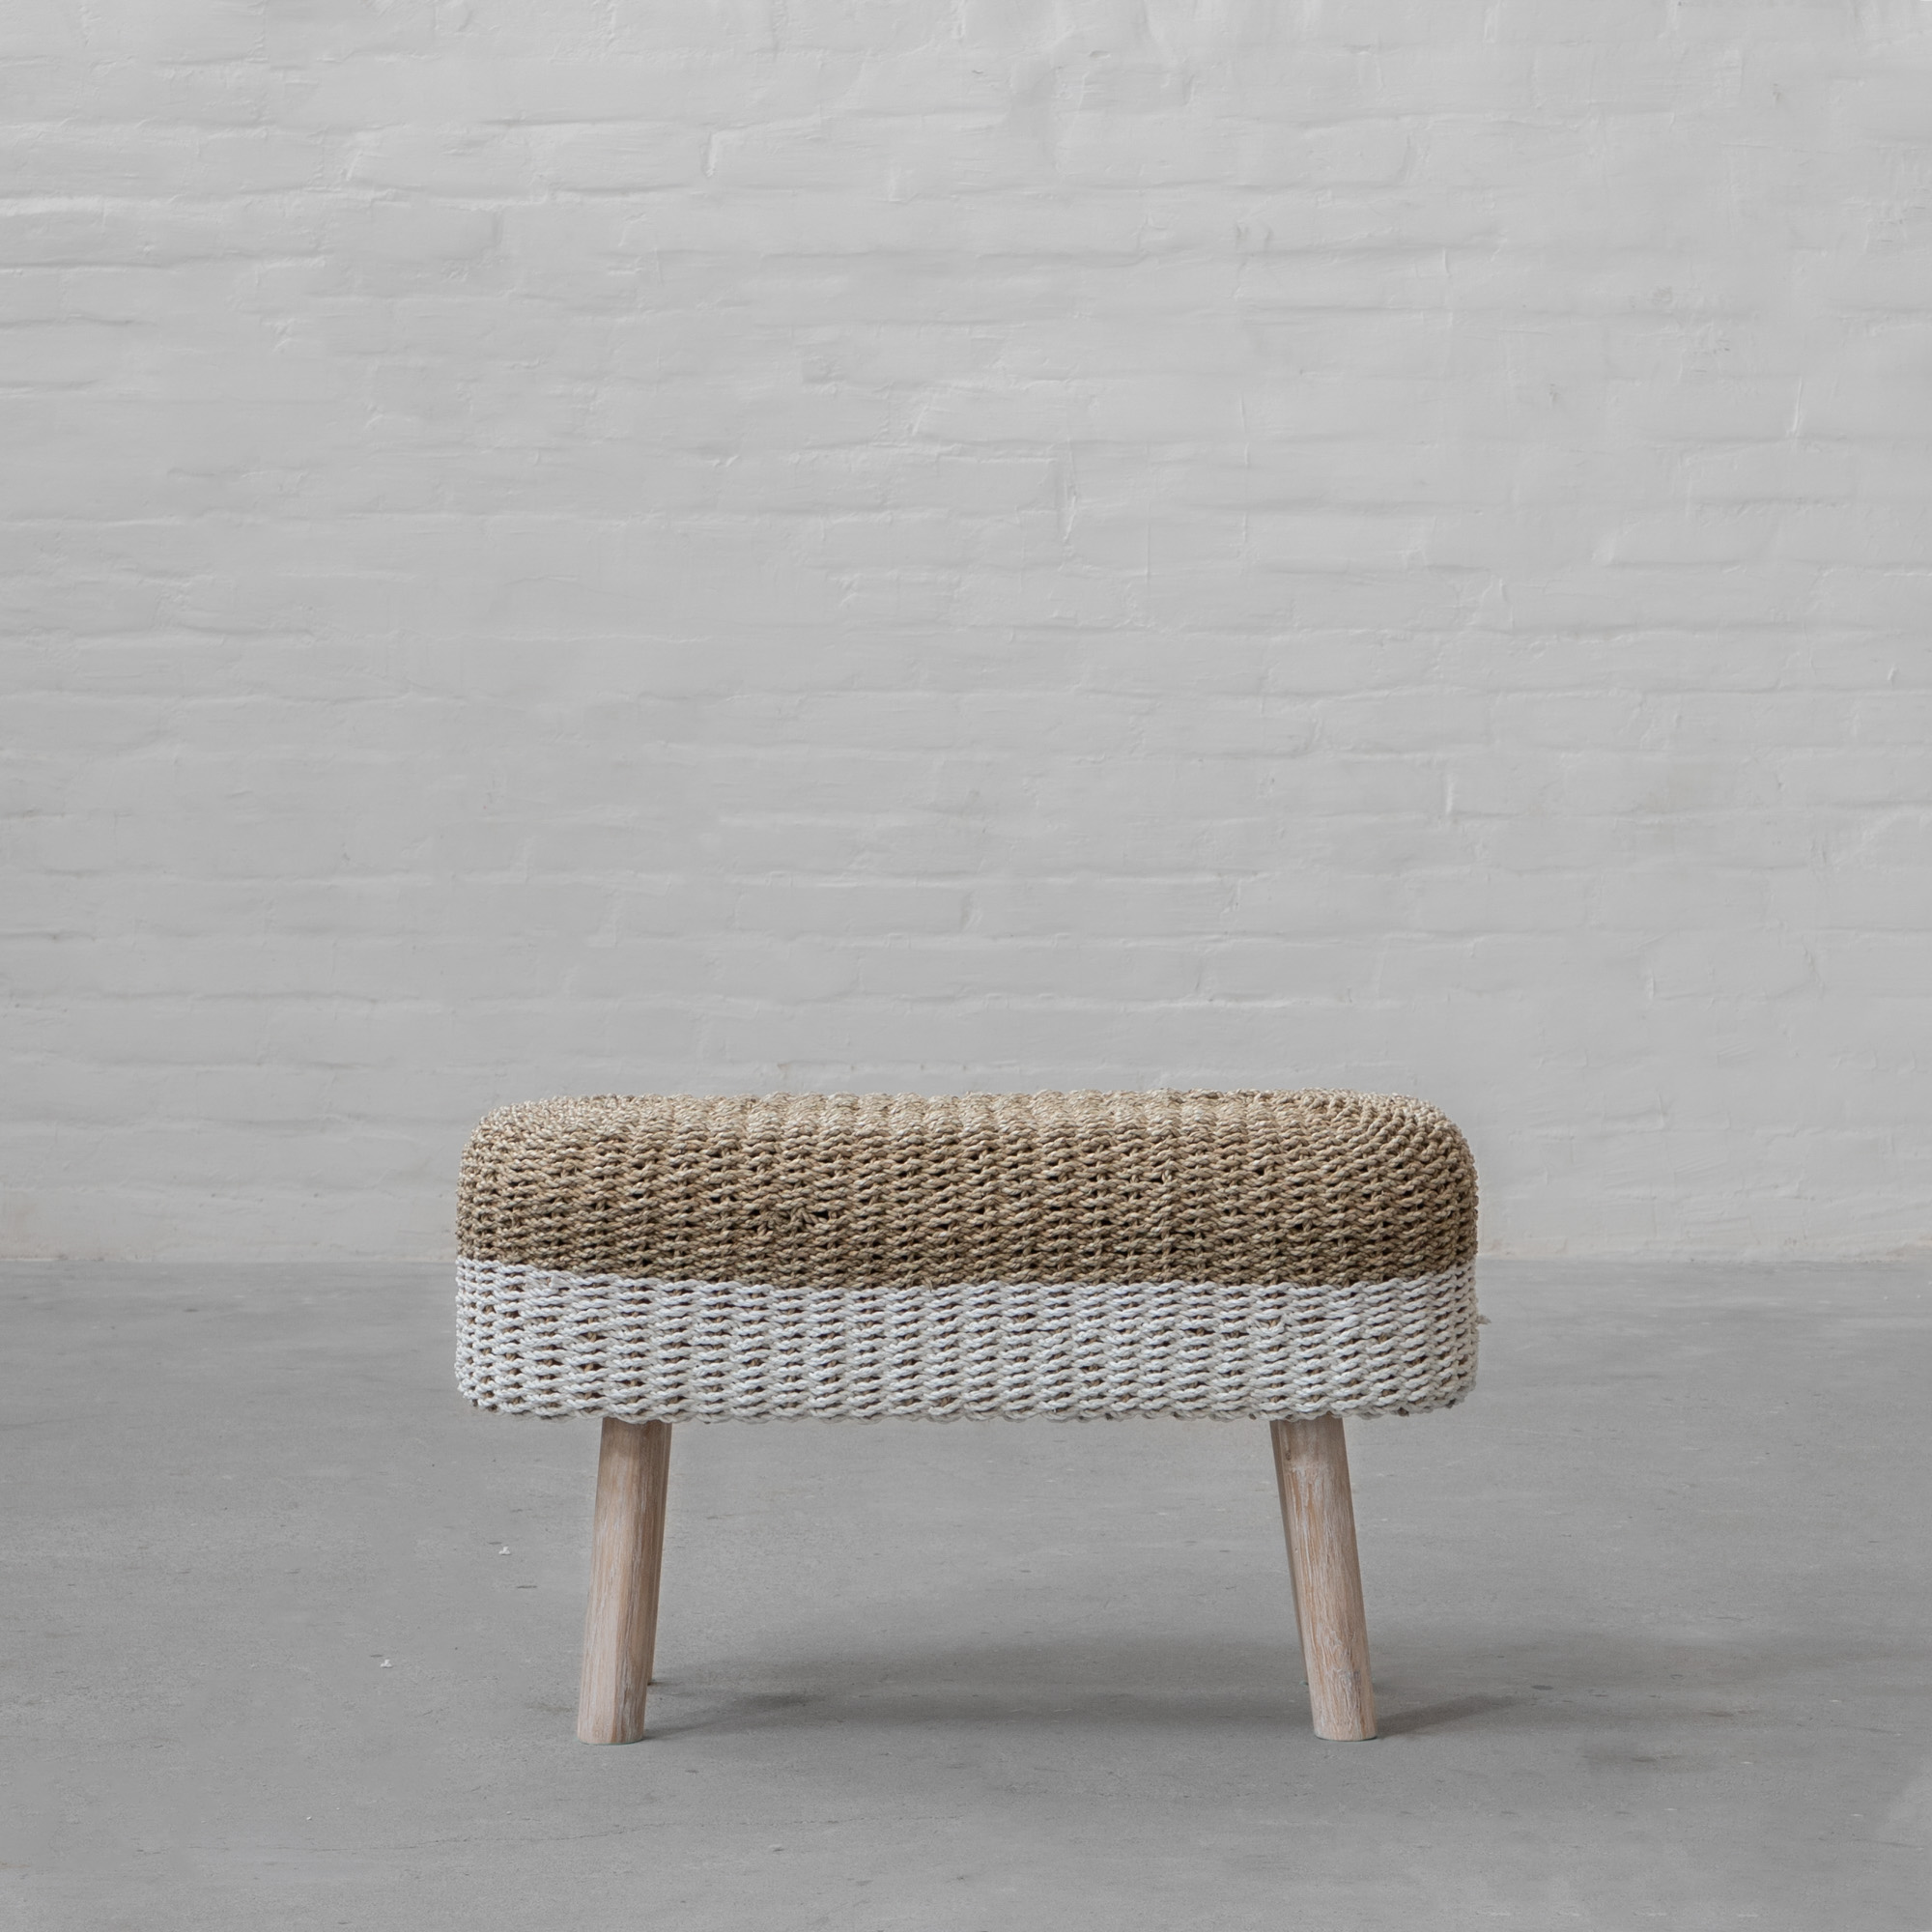 Langkawi Seagrass Bench – Natural White